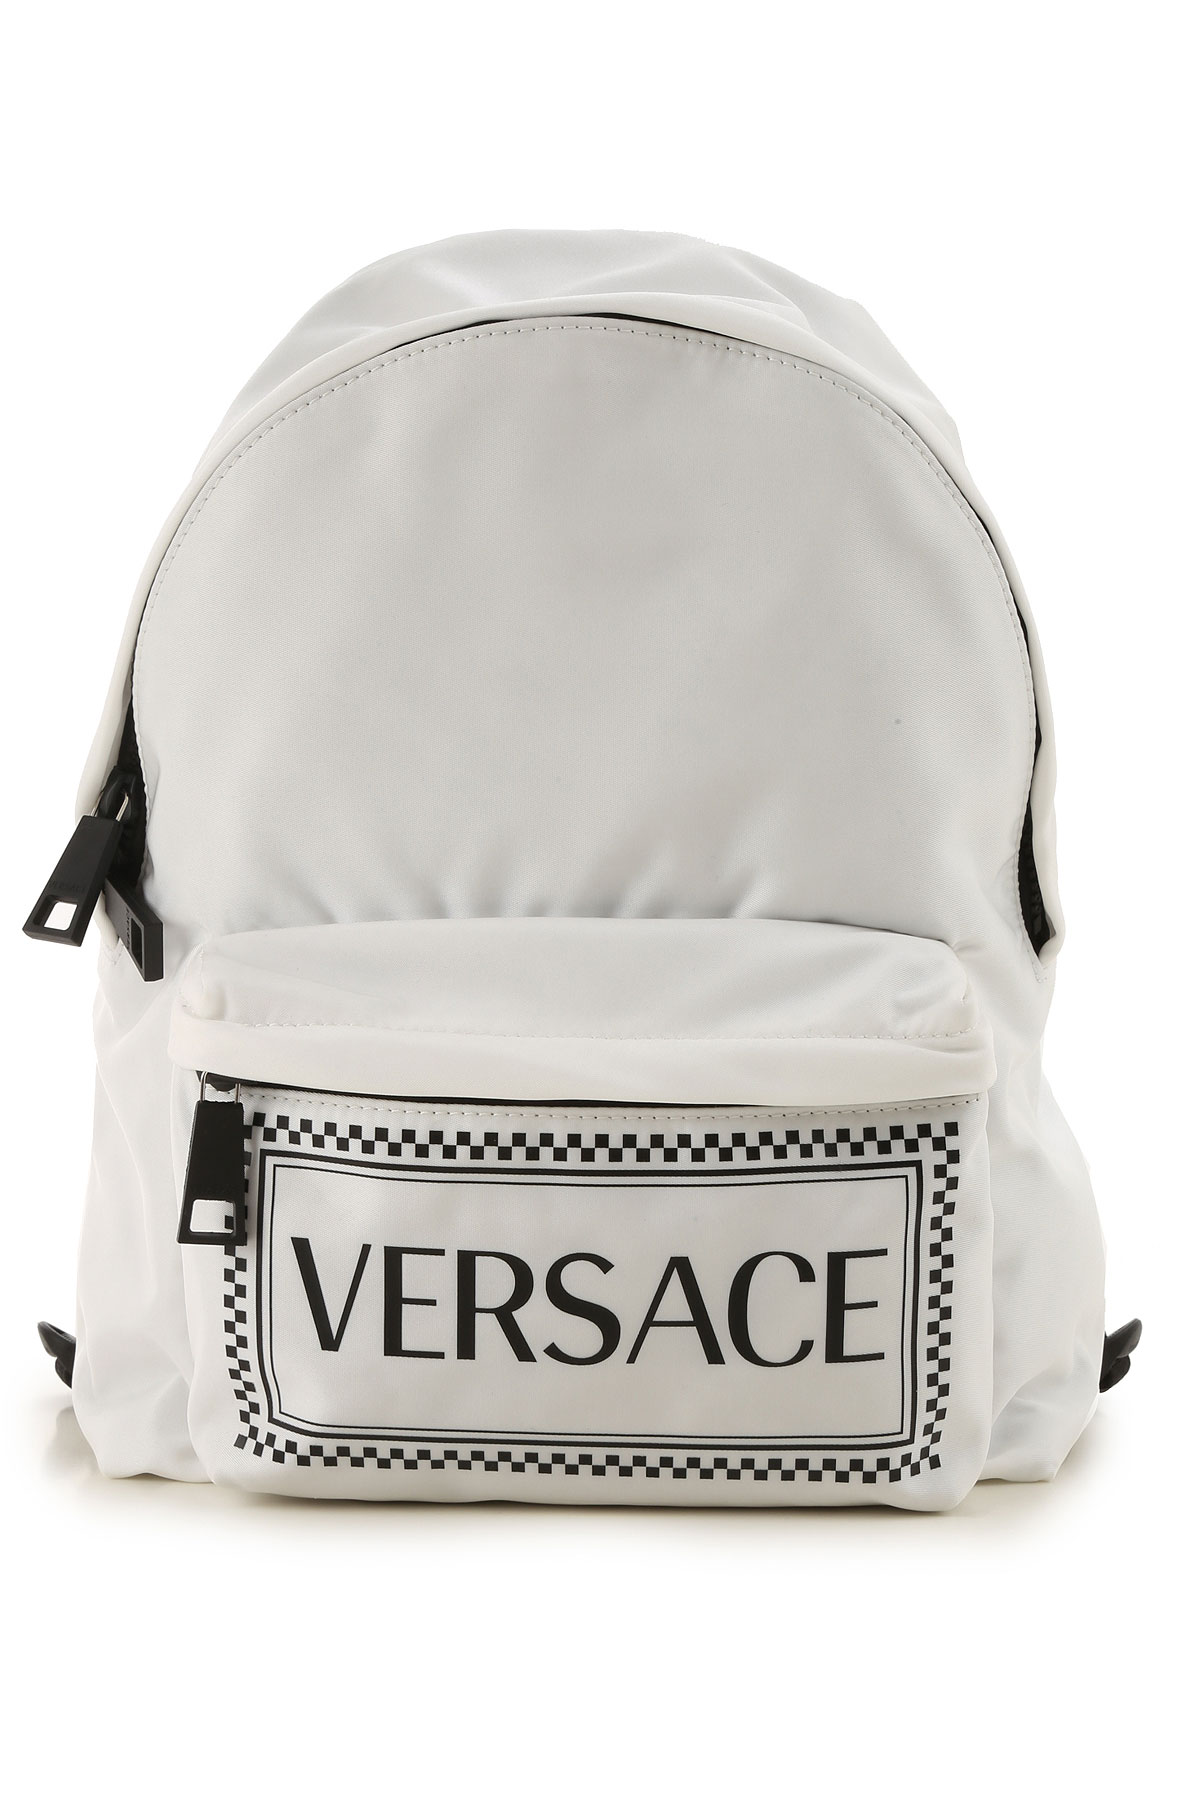 Versace Backpack for Women On Sale in Outlet, White, Nylon, 2019